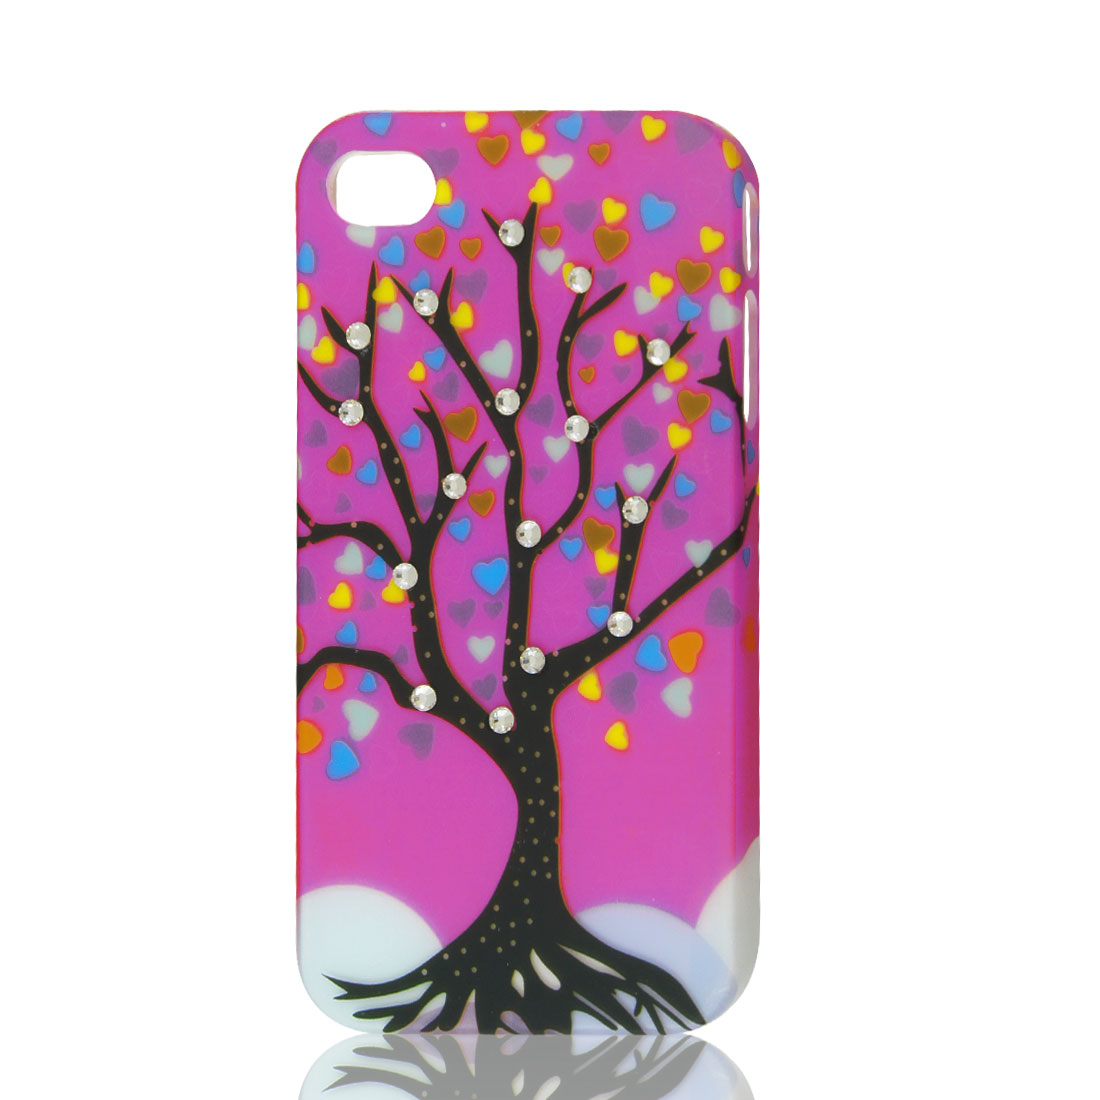 Fuchsia Rhinestone Tree Heart Design Hard Back Case Cover Skin for iPhone 4 4G